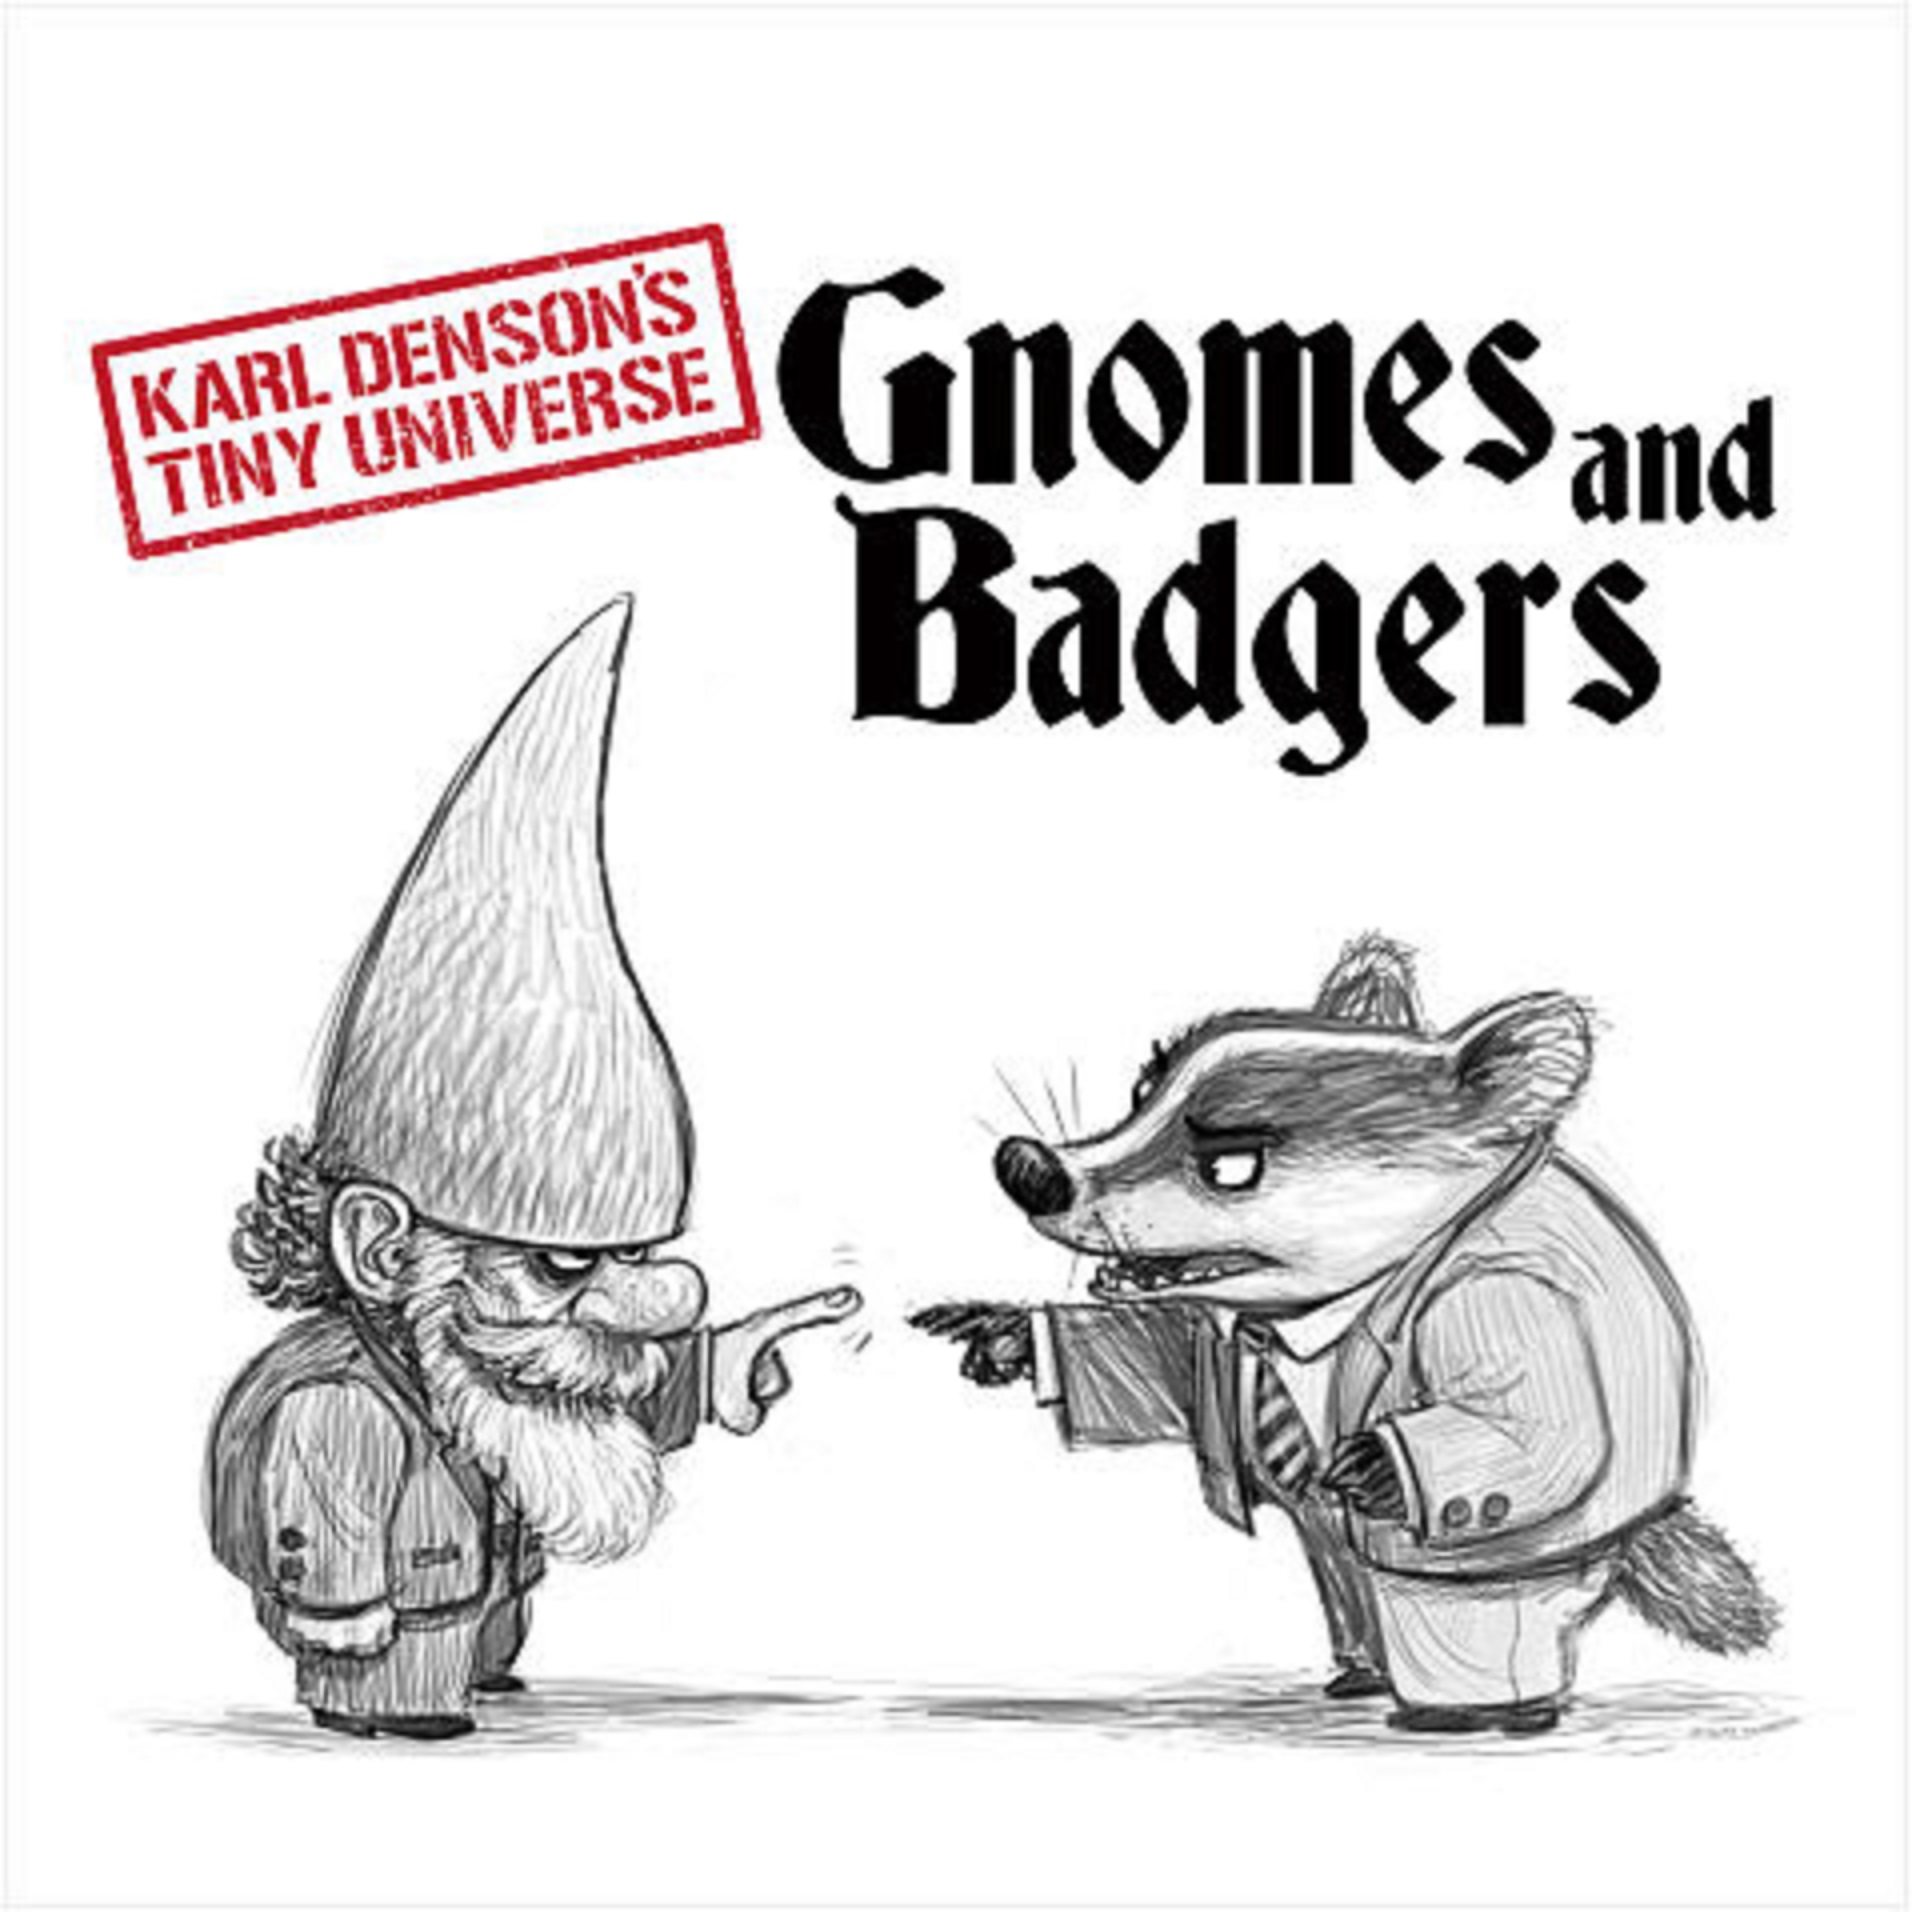 Karl Denson's Tiny Universe Announces 'Gnomes & Badgers'